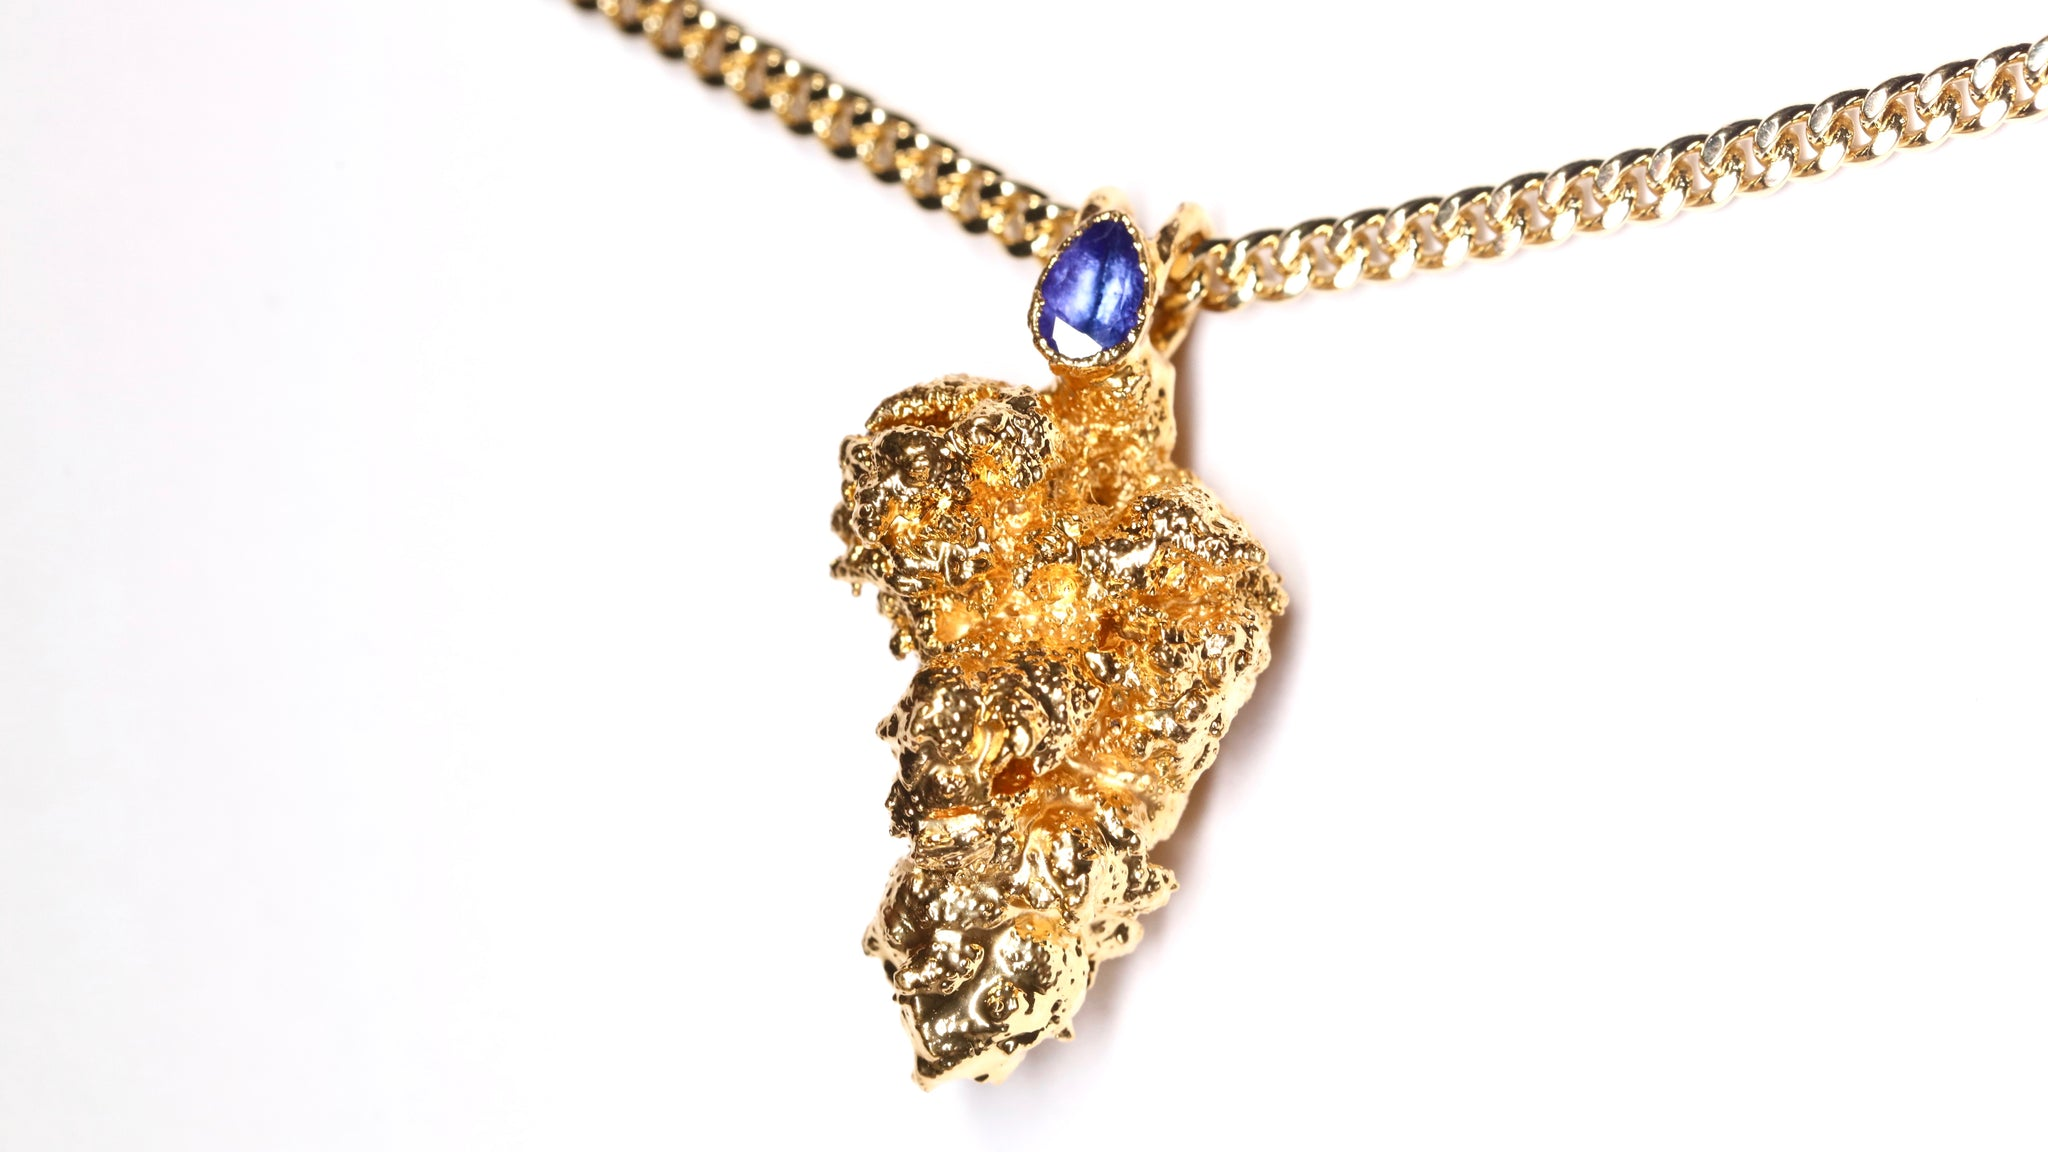 24k Gold Cannabis Nug with Tanzanite